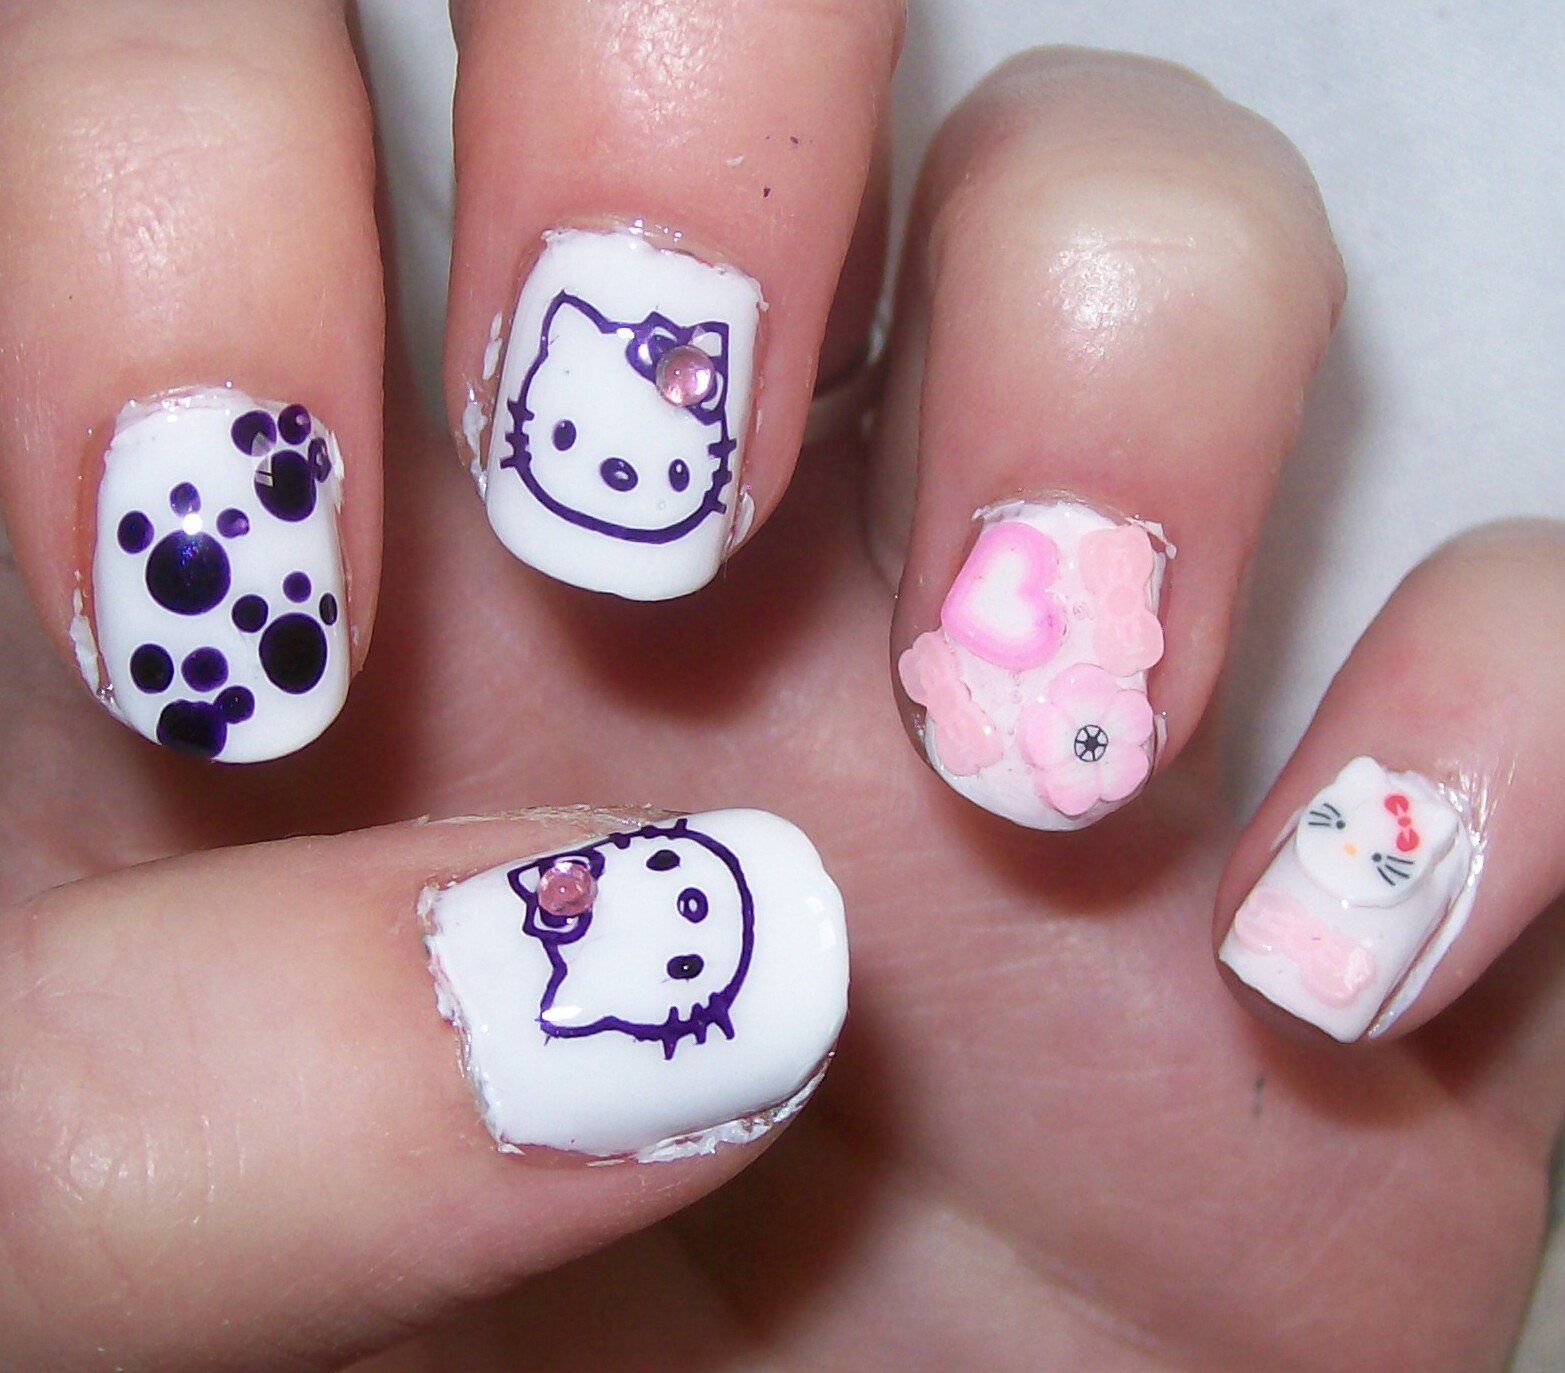 Cute nail art nail art easy designs cute nail designs cute nail art prinsesfo Image collections